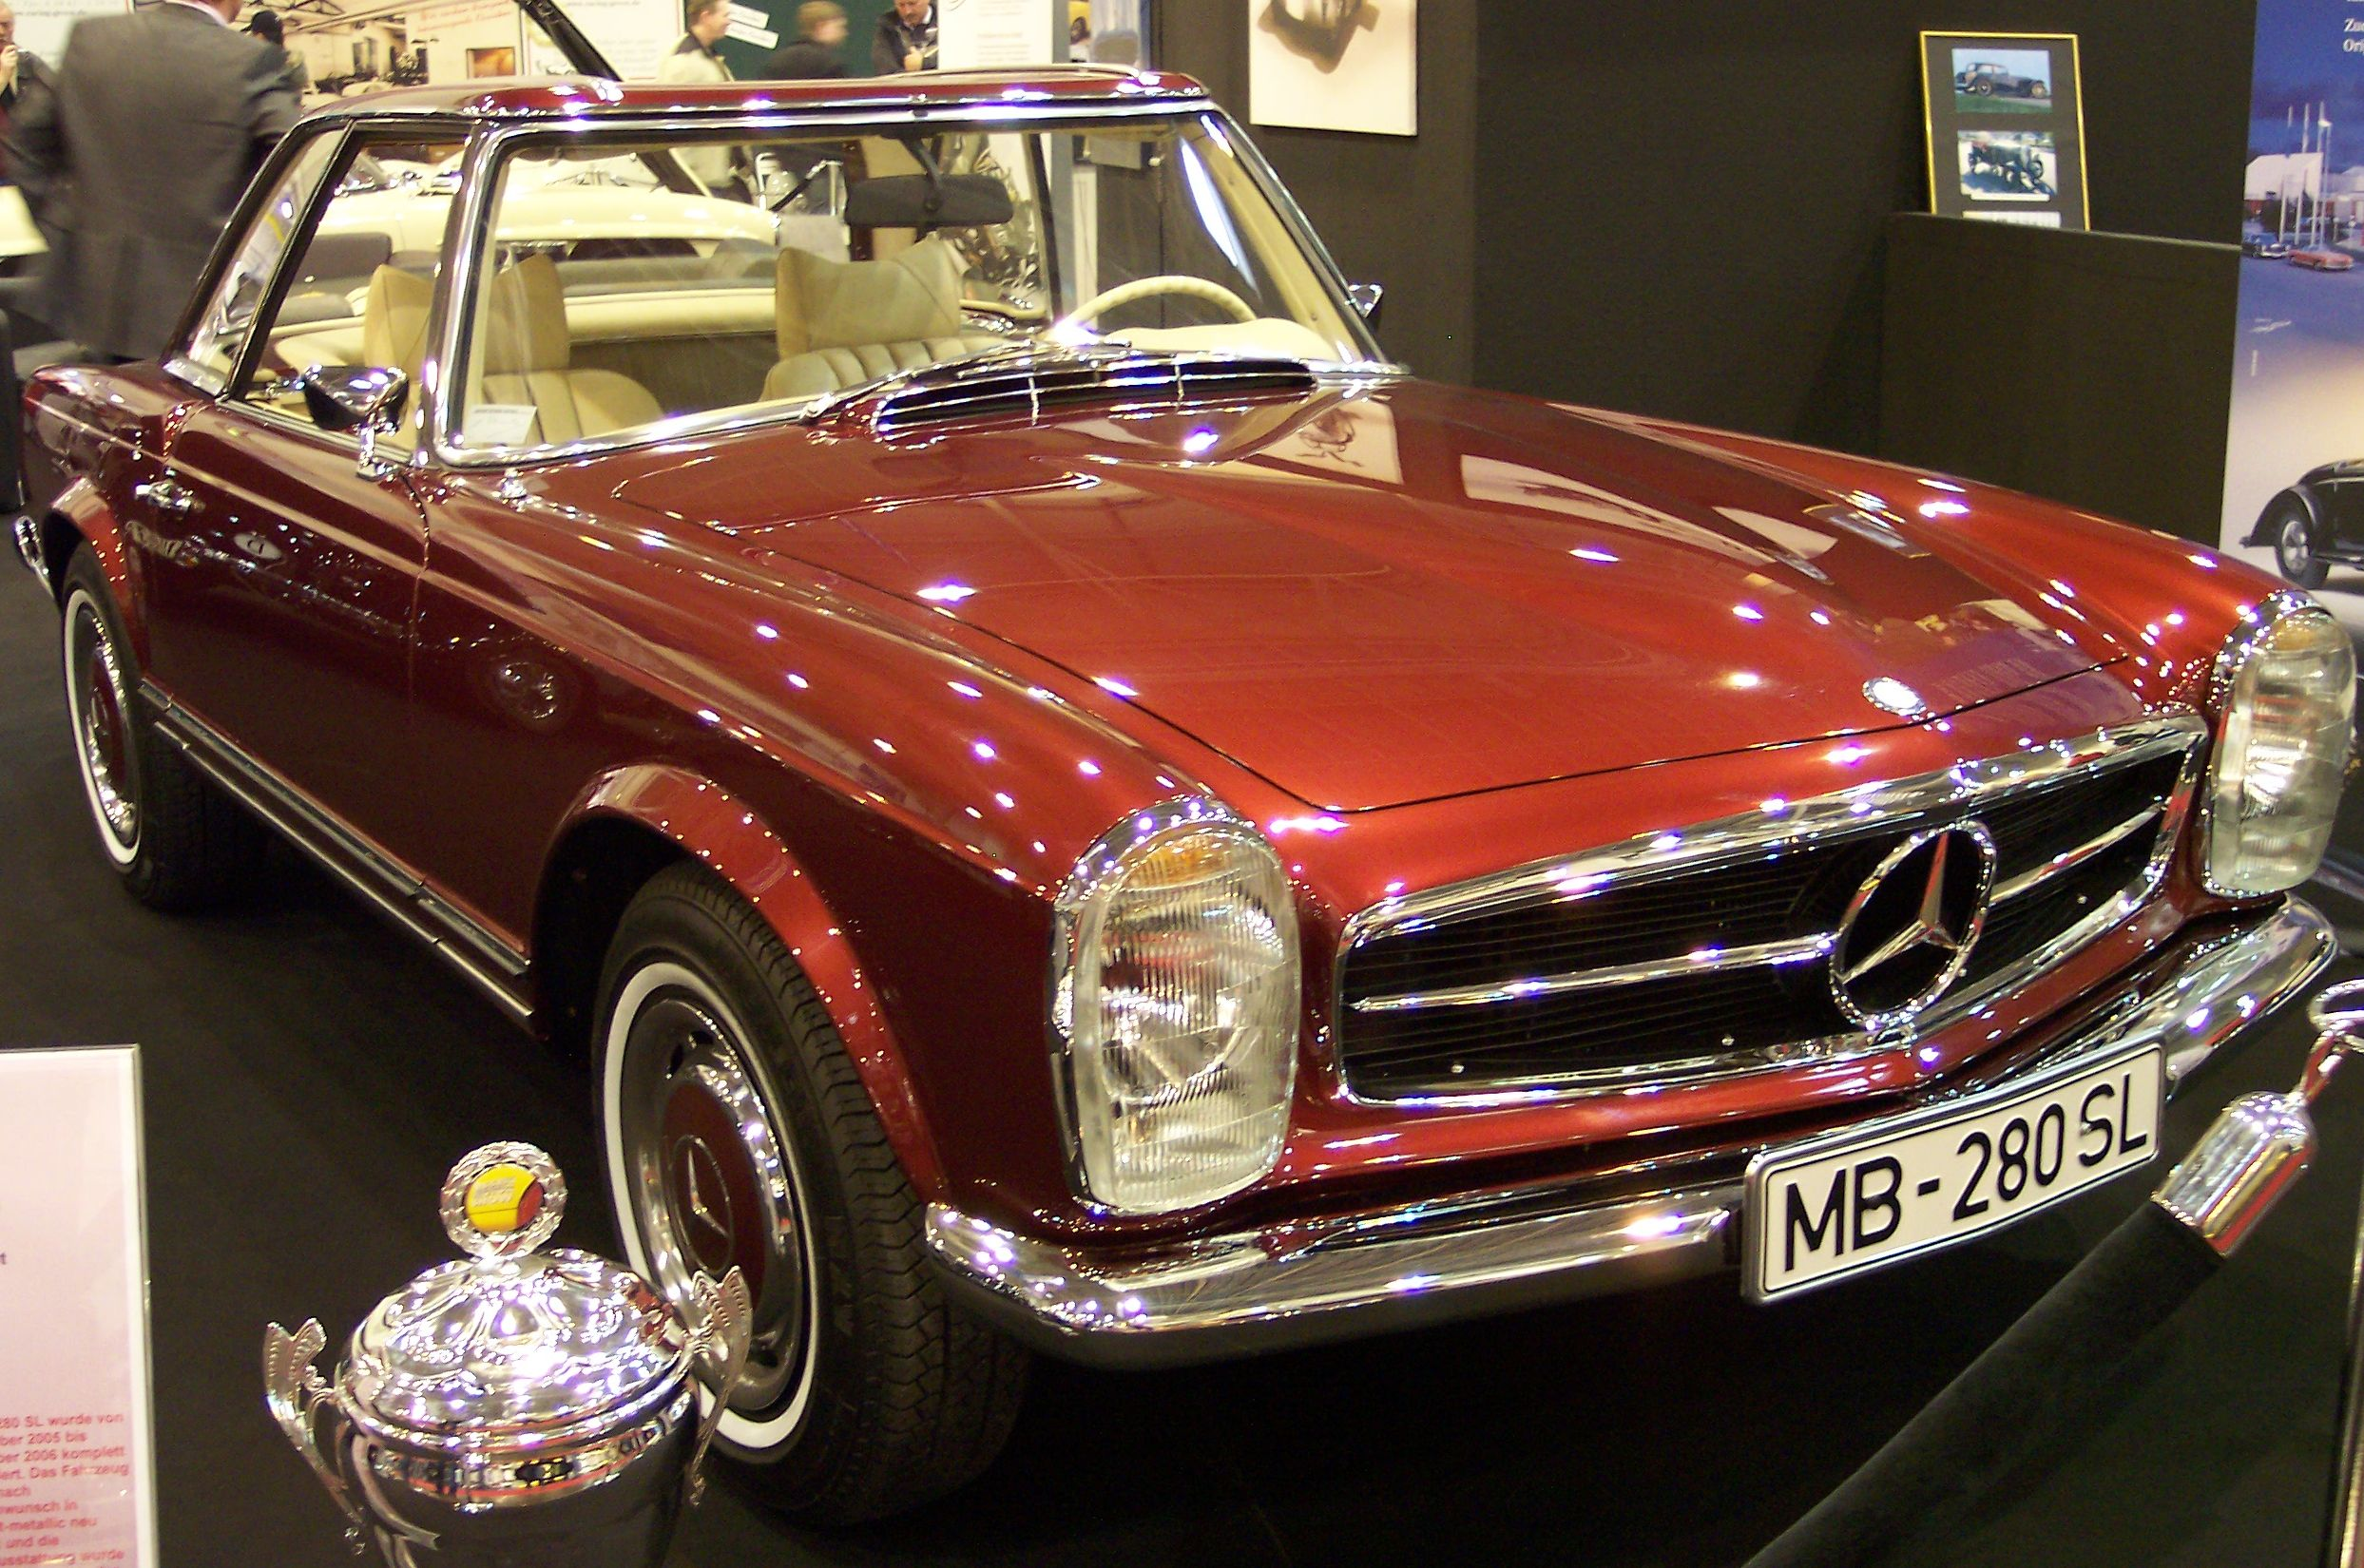 http://upload.wikimedia.org/wikipedia/commons/0/05/Mercedes_280_SL_vr_EMS.jpg